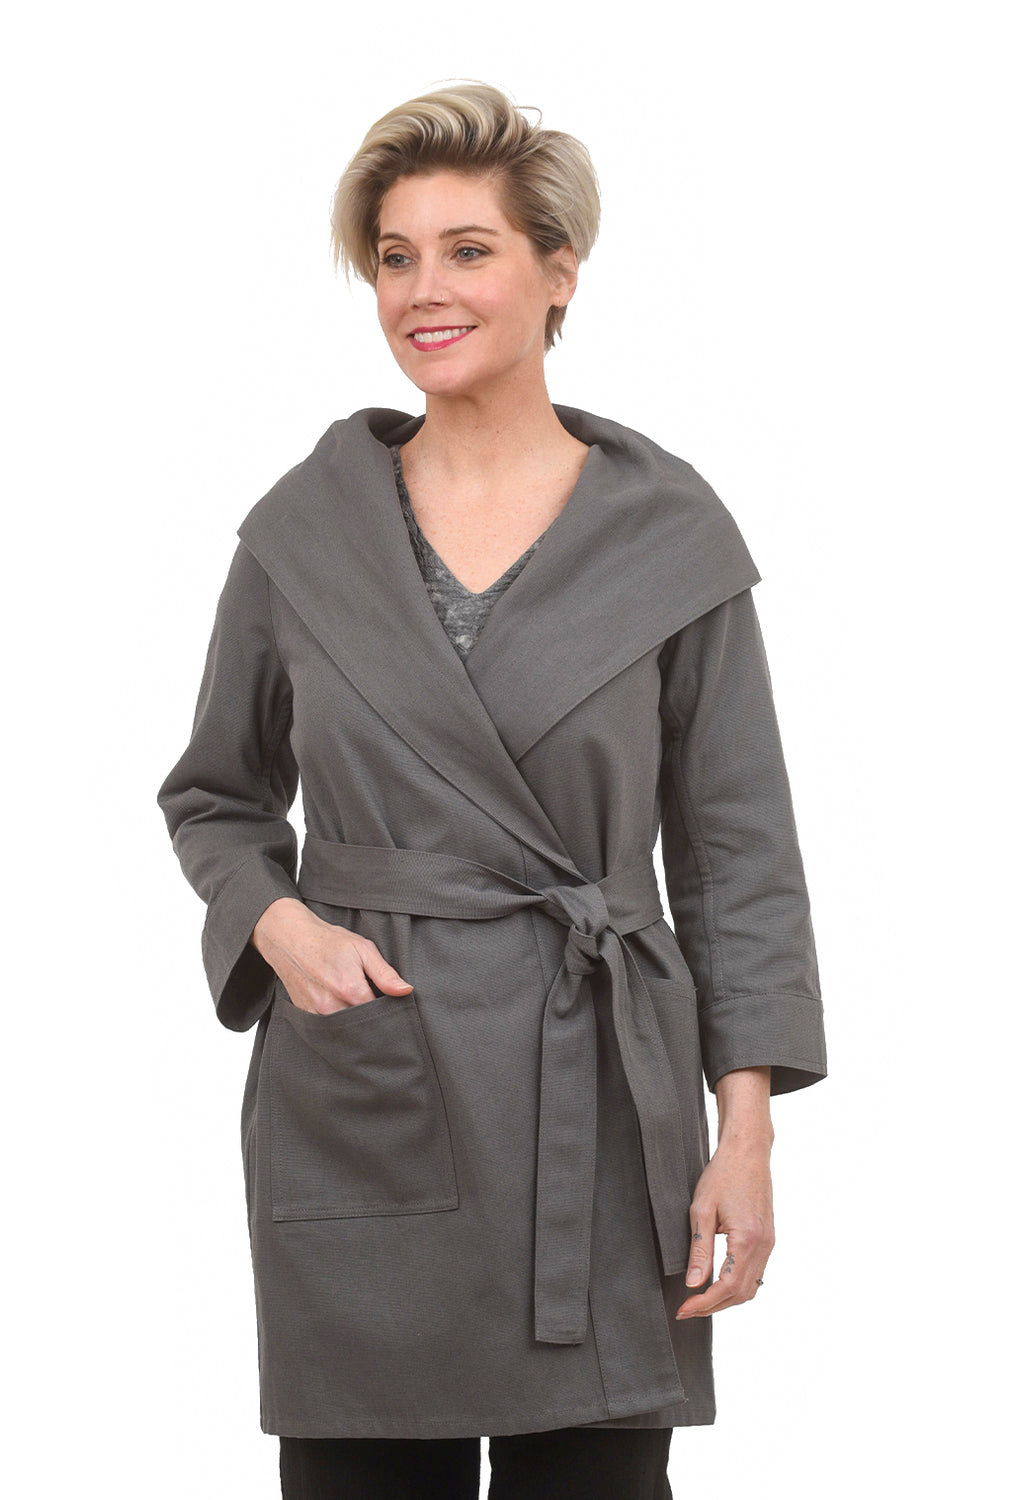 Beyond Threads Canvas Robin Jacket, Koala Gray